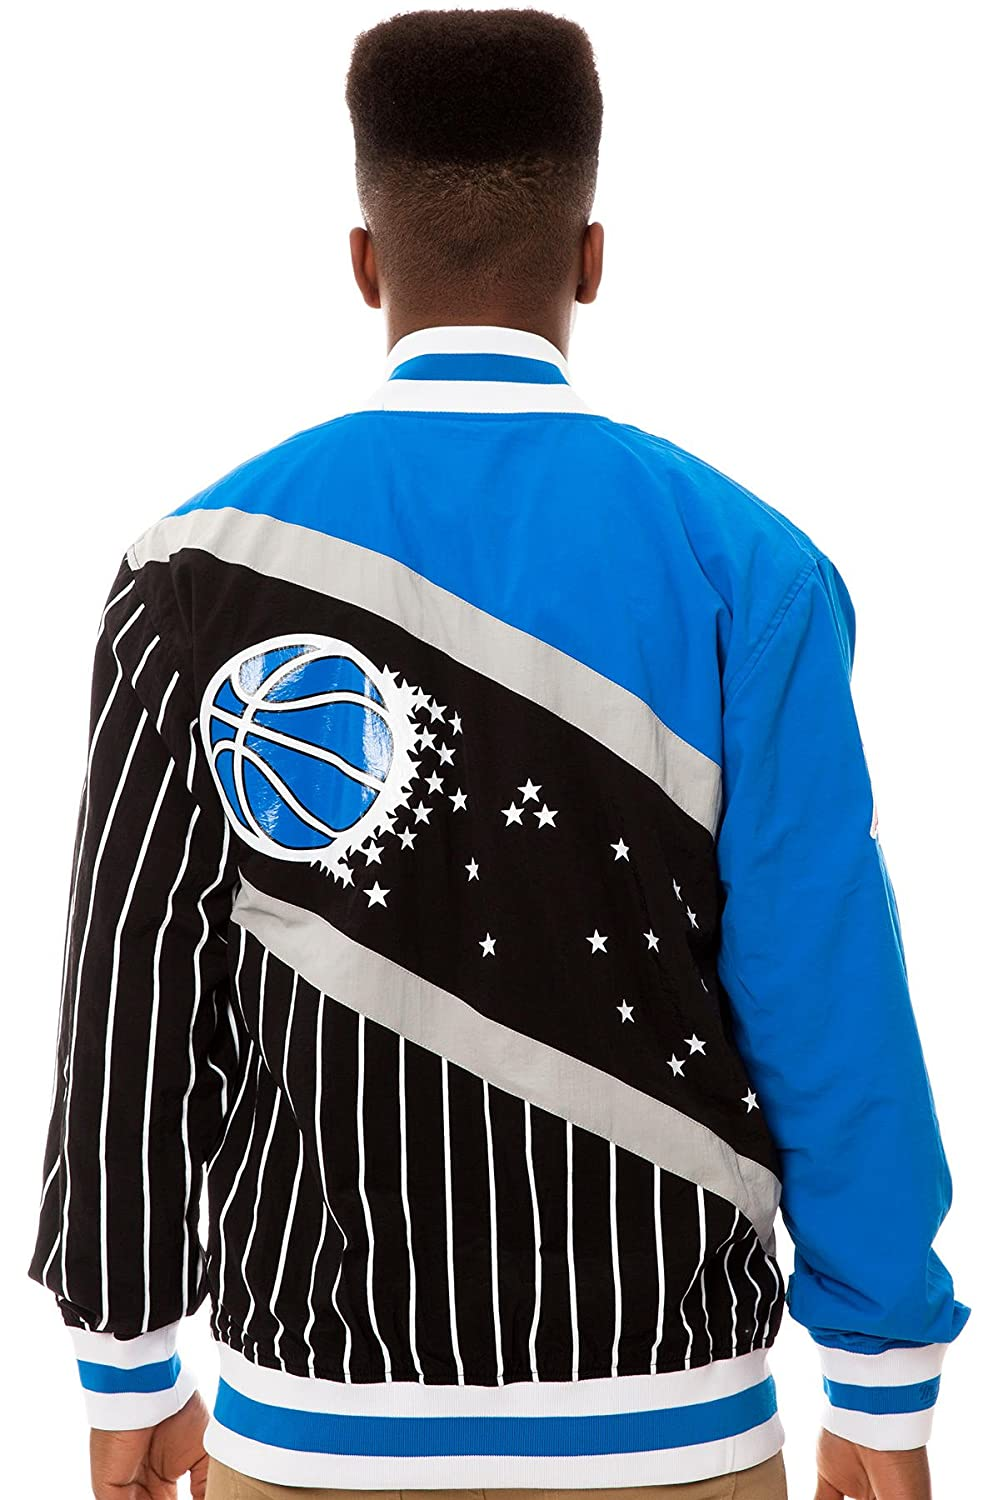 ef9a2eac7c0 Amazon.com   NBA Mitchell   Ness Orlando Magic Authentic Vintage Warm-Up  Jacket - Black Royal Blue (Medium)   Sports Fan Outerwear Jackets   Sports    ...